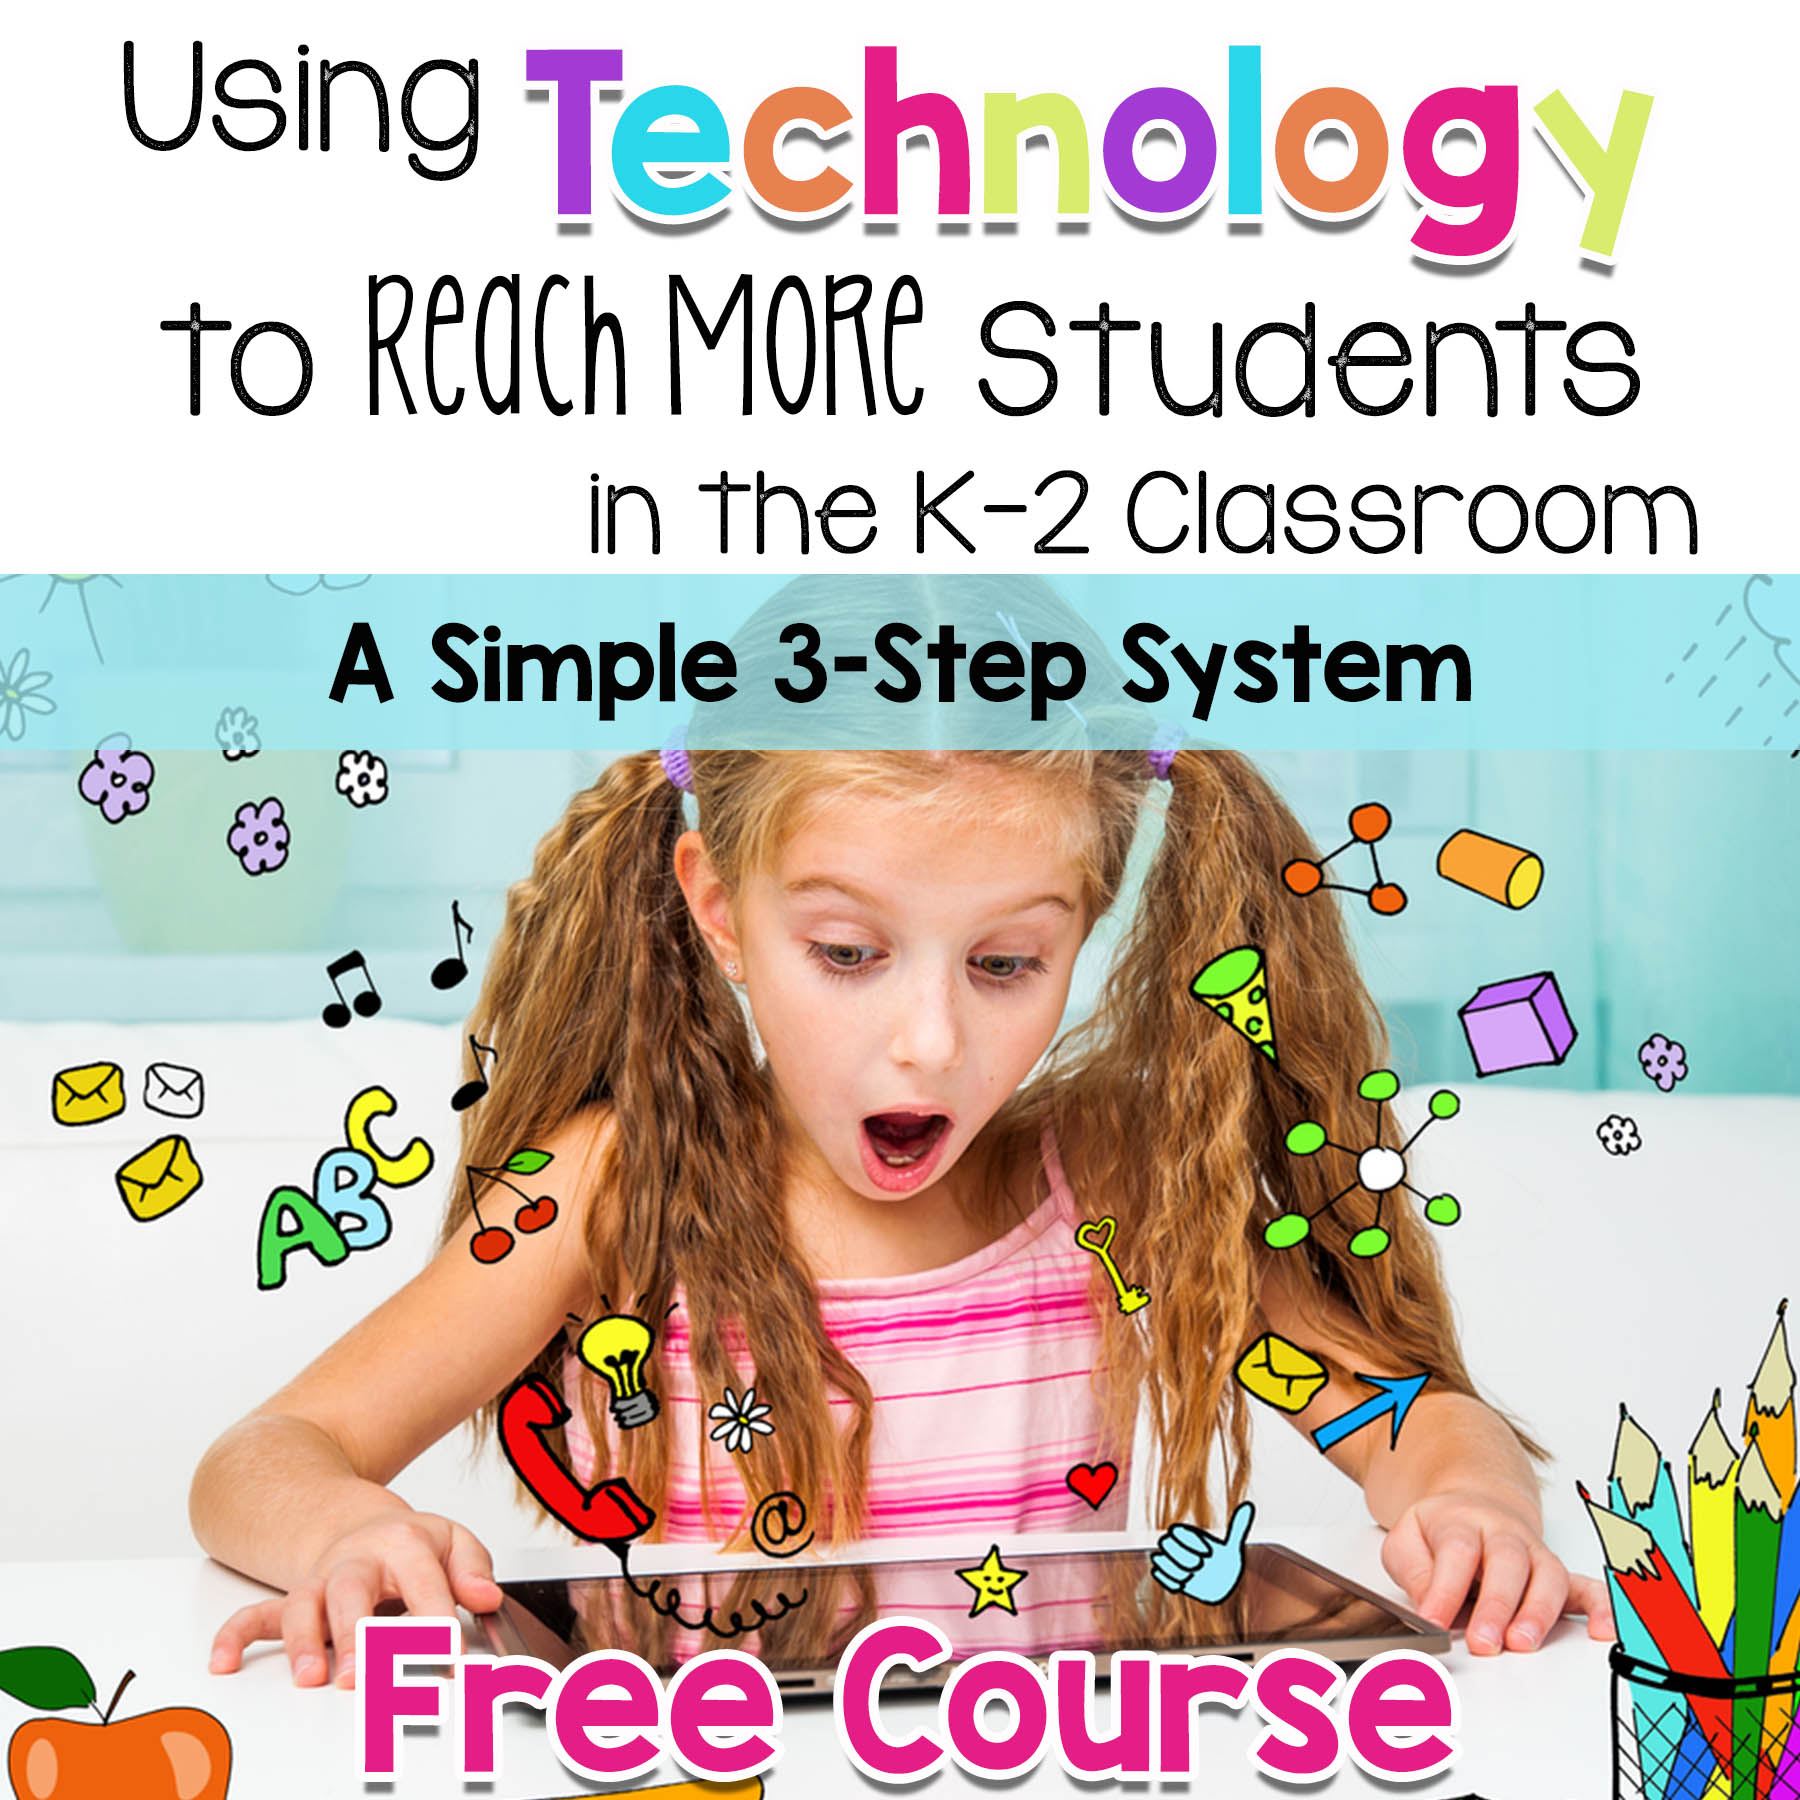 Use Tech to Reach More Students in K-2